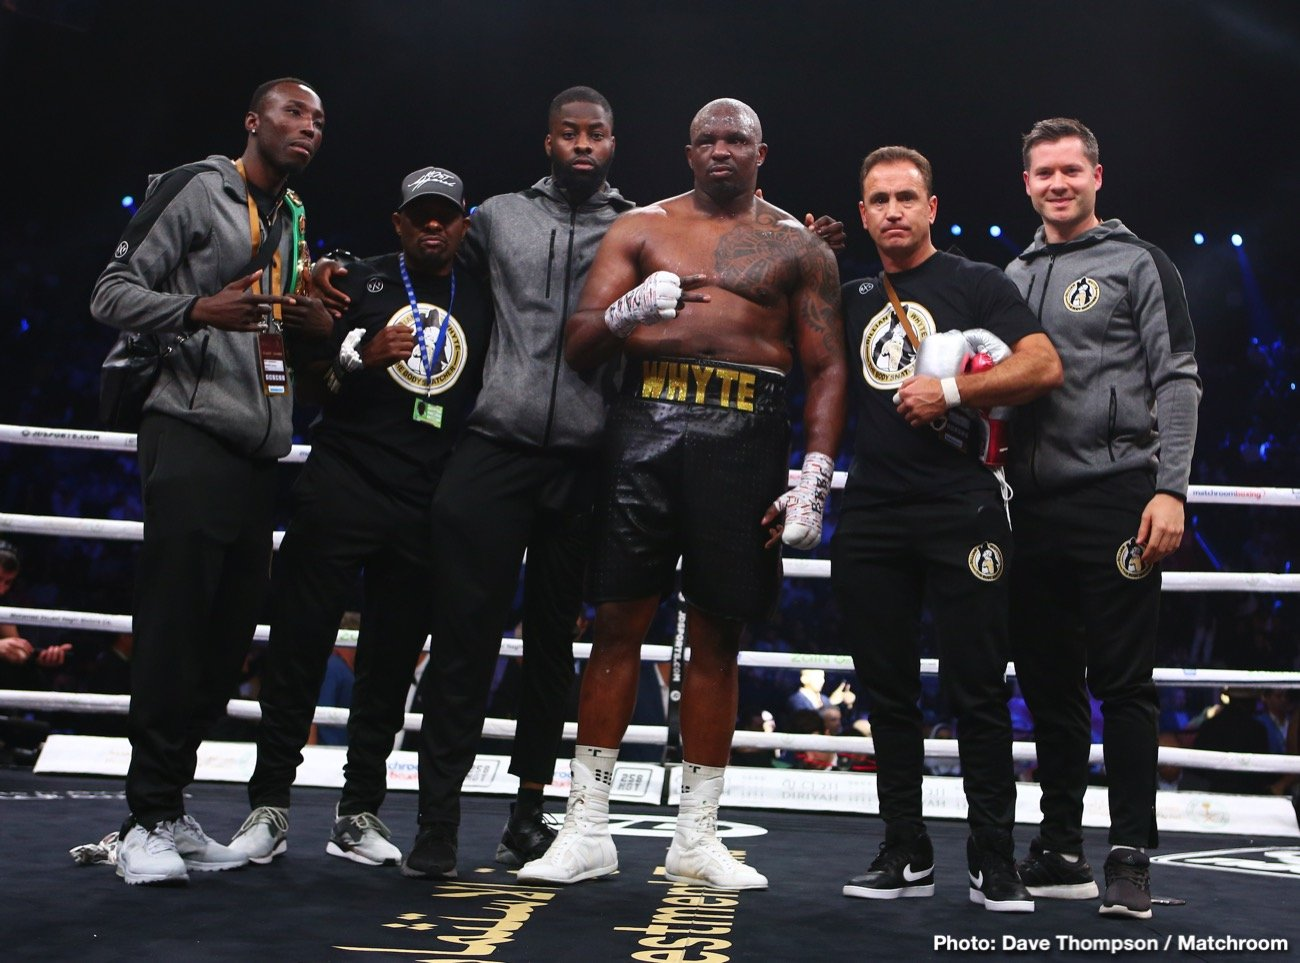 Heavyweight contenders Dillian 'The Body Snatcher' Whyte (27-1, 18 KOs) and Alexander Povetkin (35-2-1, 24 KOs) are still in negotiations for a fight in April or May on DAZN.